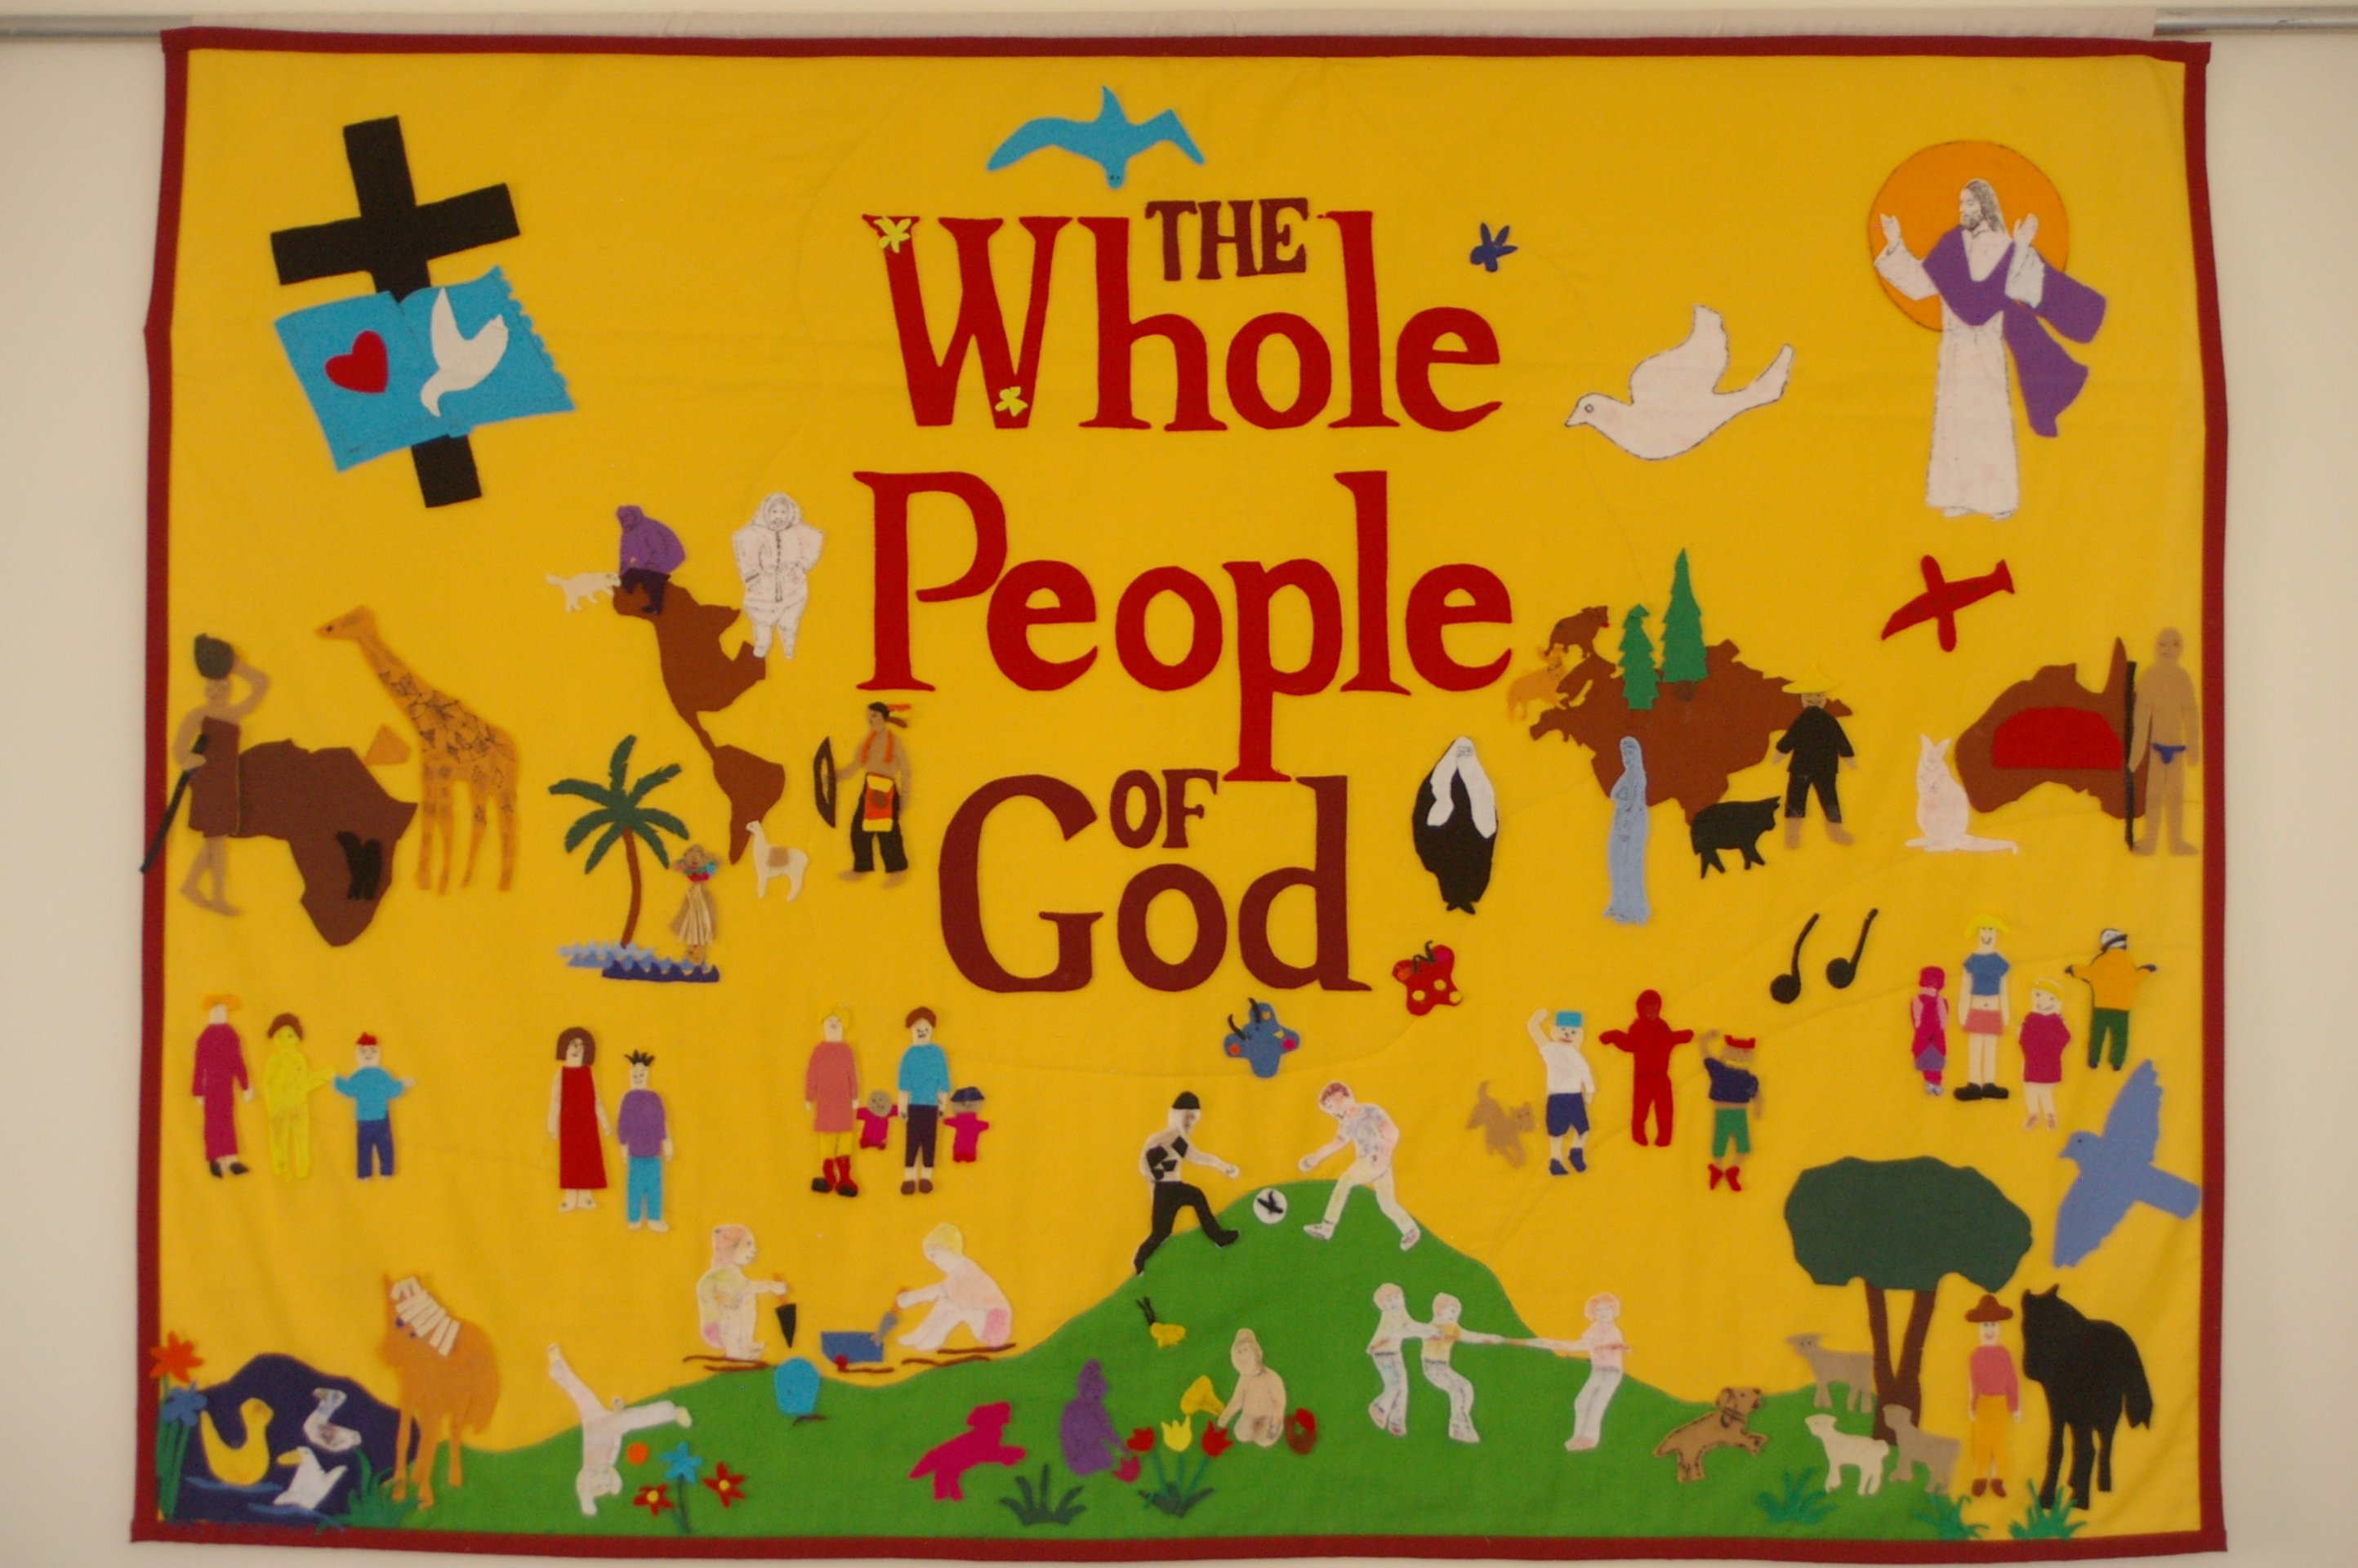 The Whole People of God